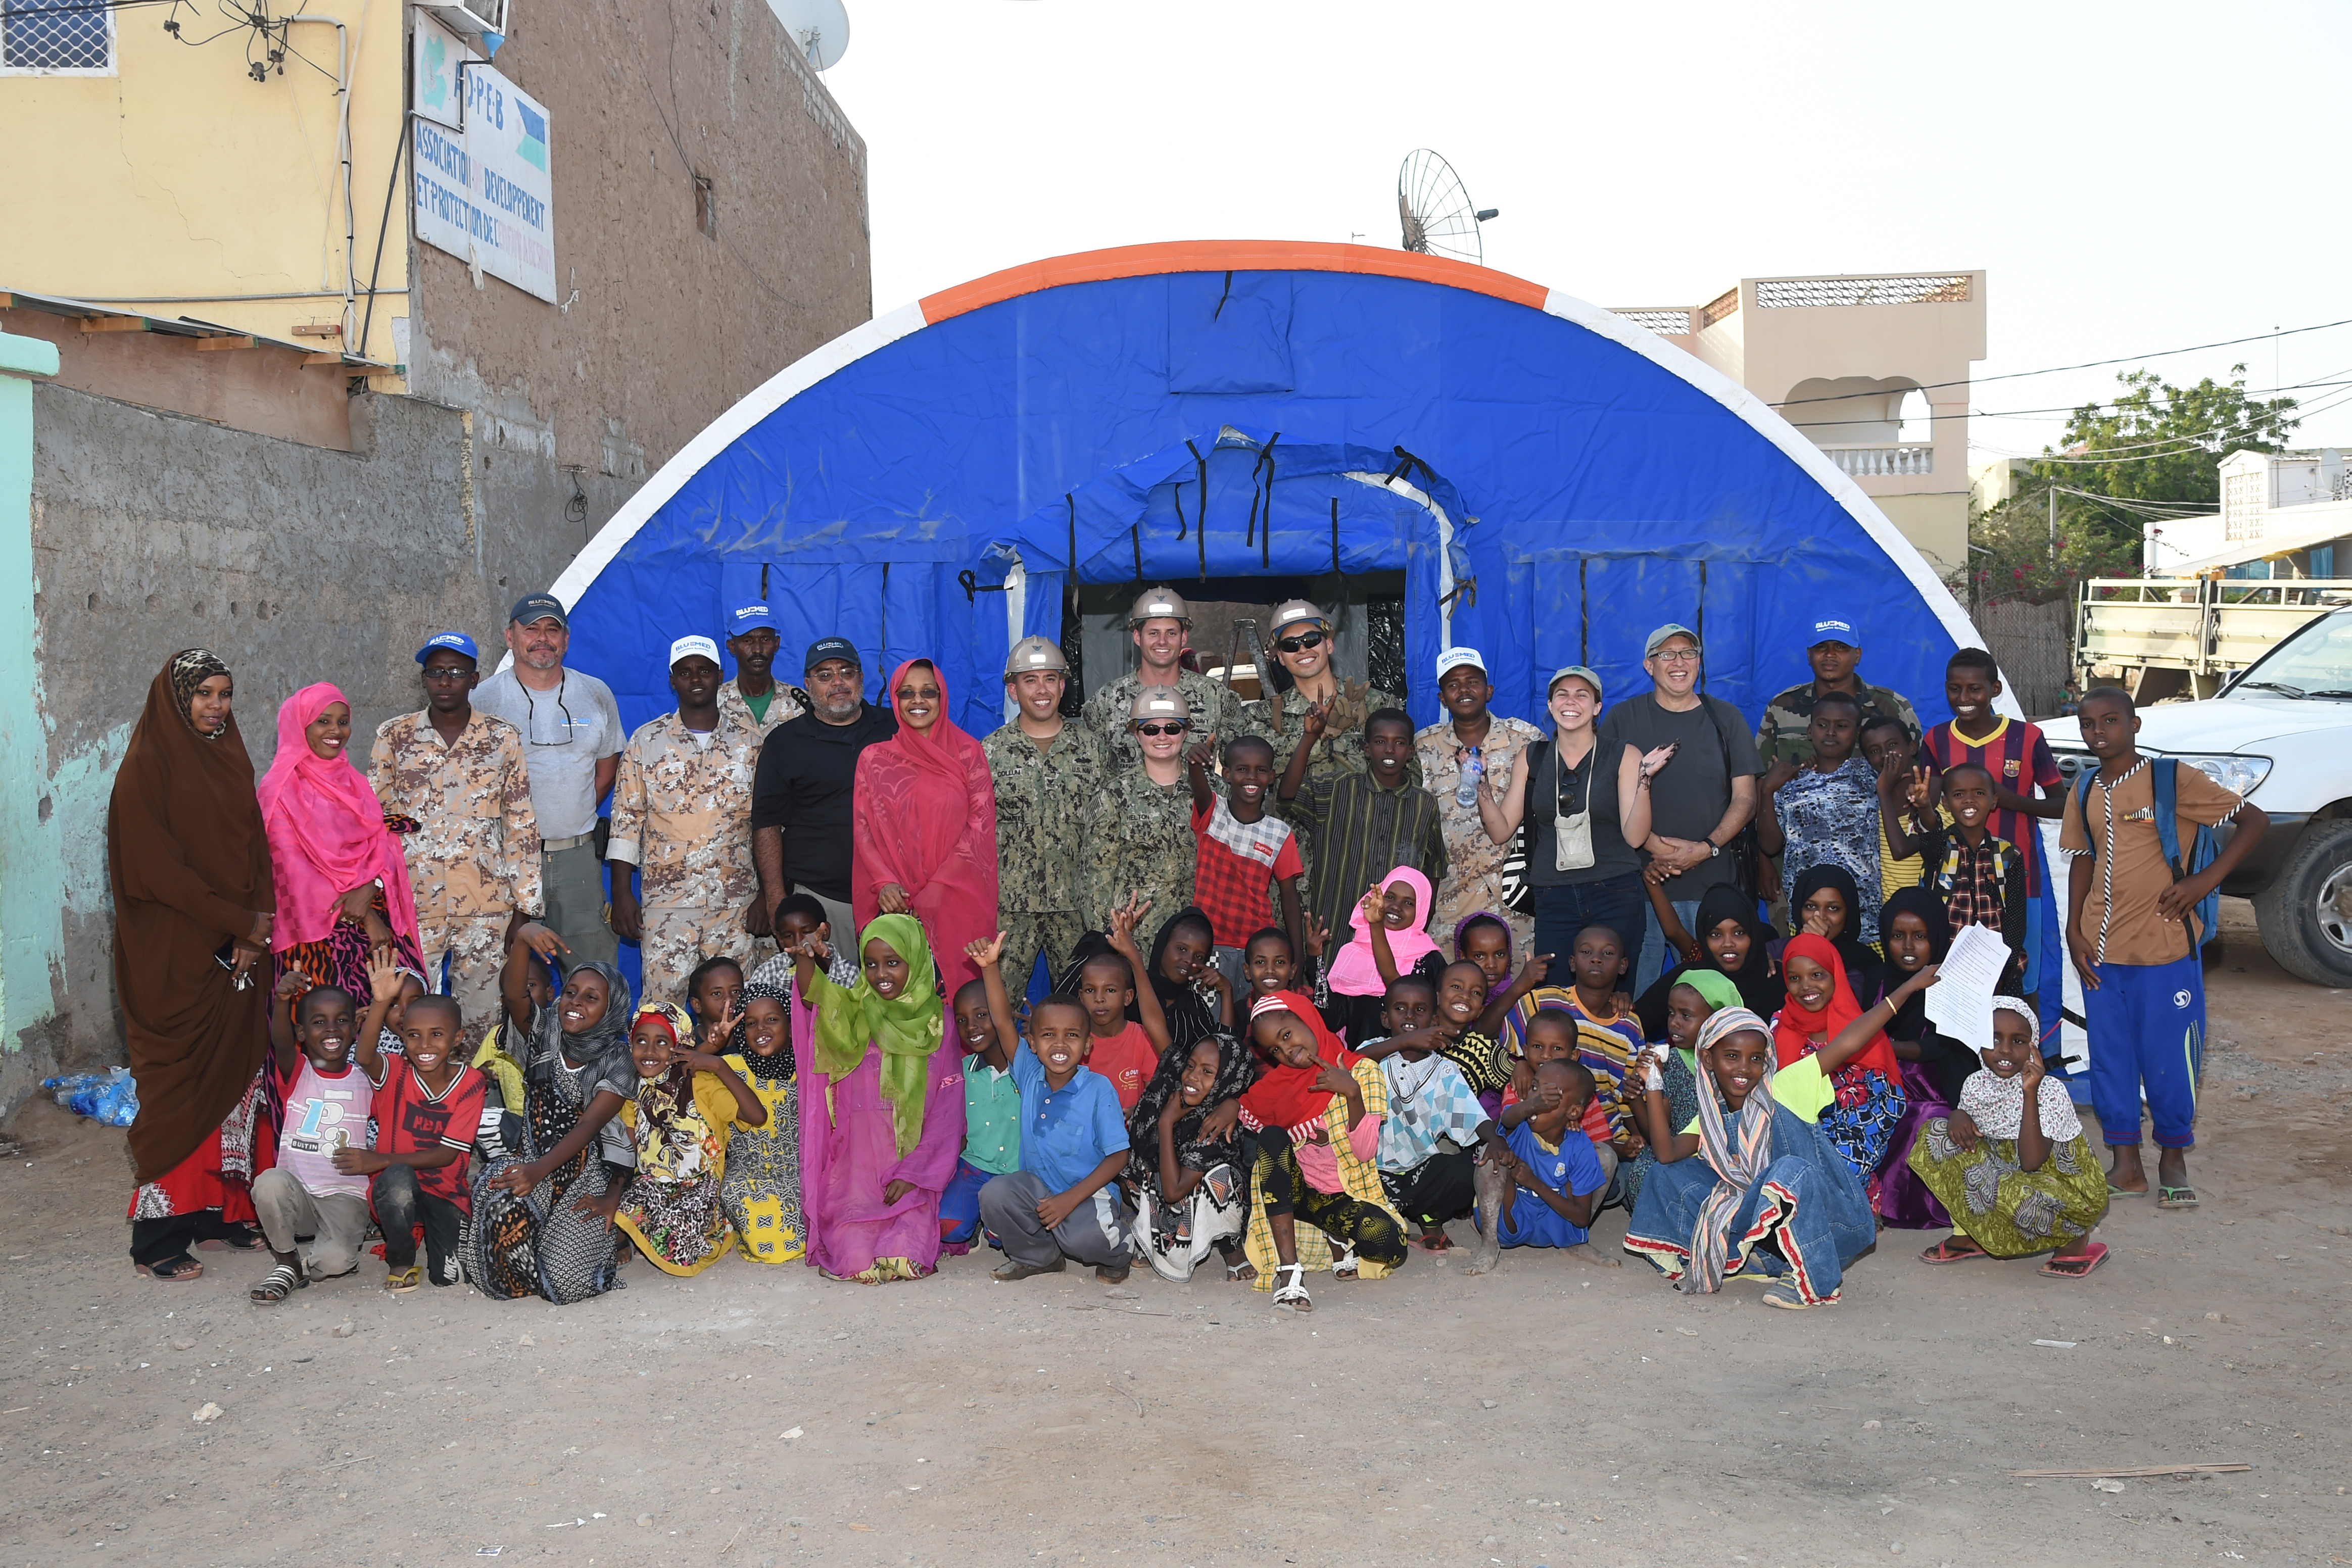 U.S. Navy Seabees with Naval Mobile Construction Battalion 1, join Djibouti Armed Forces soldiers, and representatives from Alaska Shelters, the Global Action Coalition, the Association for the Development and Protection of Children (ADPEB) and local youth following the construction of a modular shelter system in Djibouti City, Feb. 27, 2017. The shelter is one of six donated by Alaska Shelters through the Global Action Coalition, and will give the ADPEB additional shelter and classroom space for homeless children in Djibouti. (U.S. Air National Guard photo by Master Sgt. Paul Gorman)